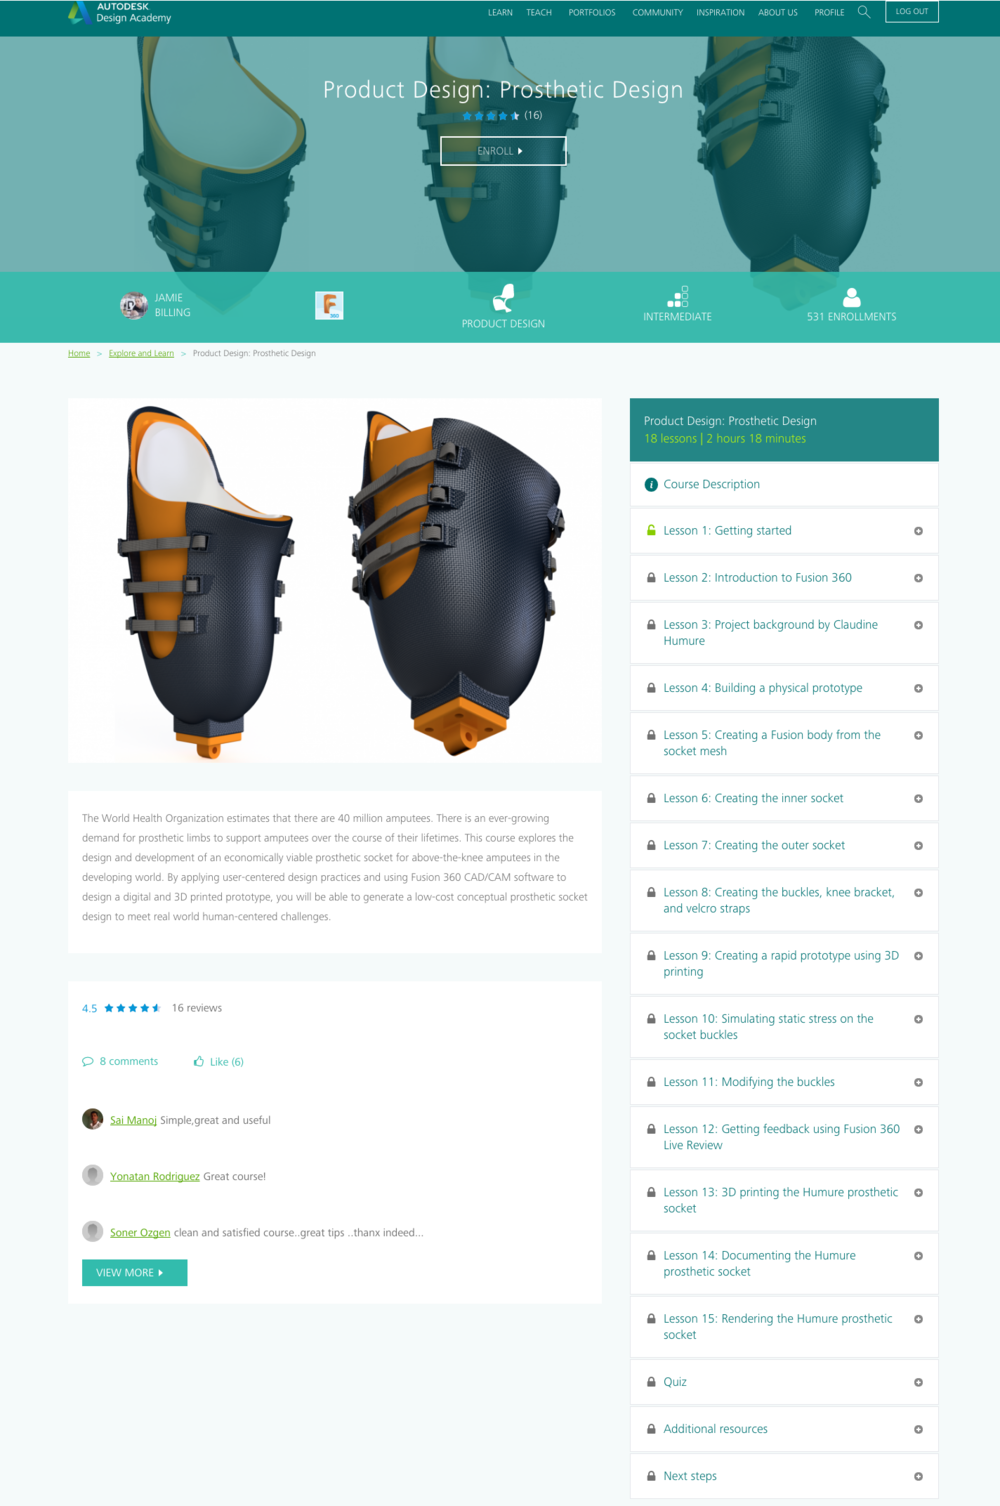 Above:  The  Prosthetic Design  project for Autodesk Inc. A real-world human-centred online course exploring the design and development of an economically viable prosthetic socket for above-the-knee amputees in the developing world.